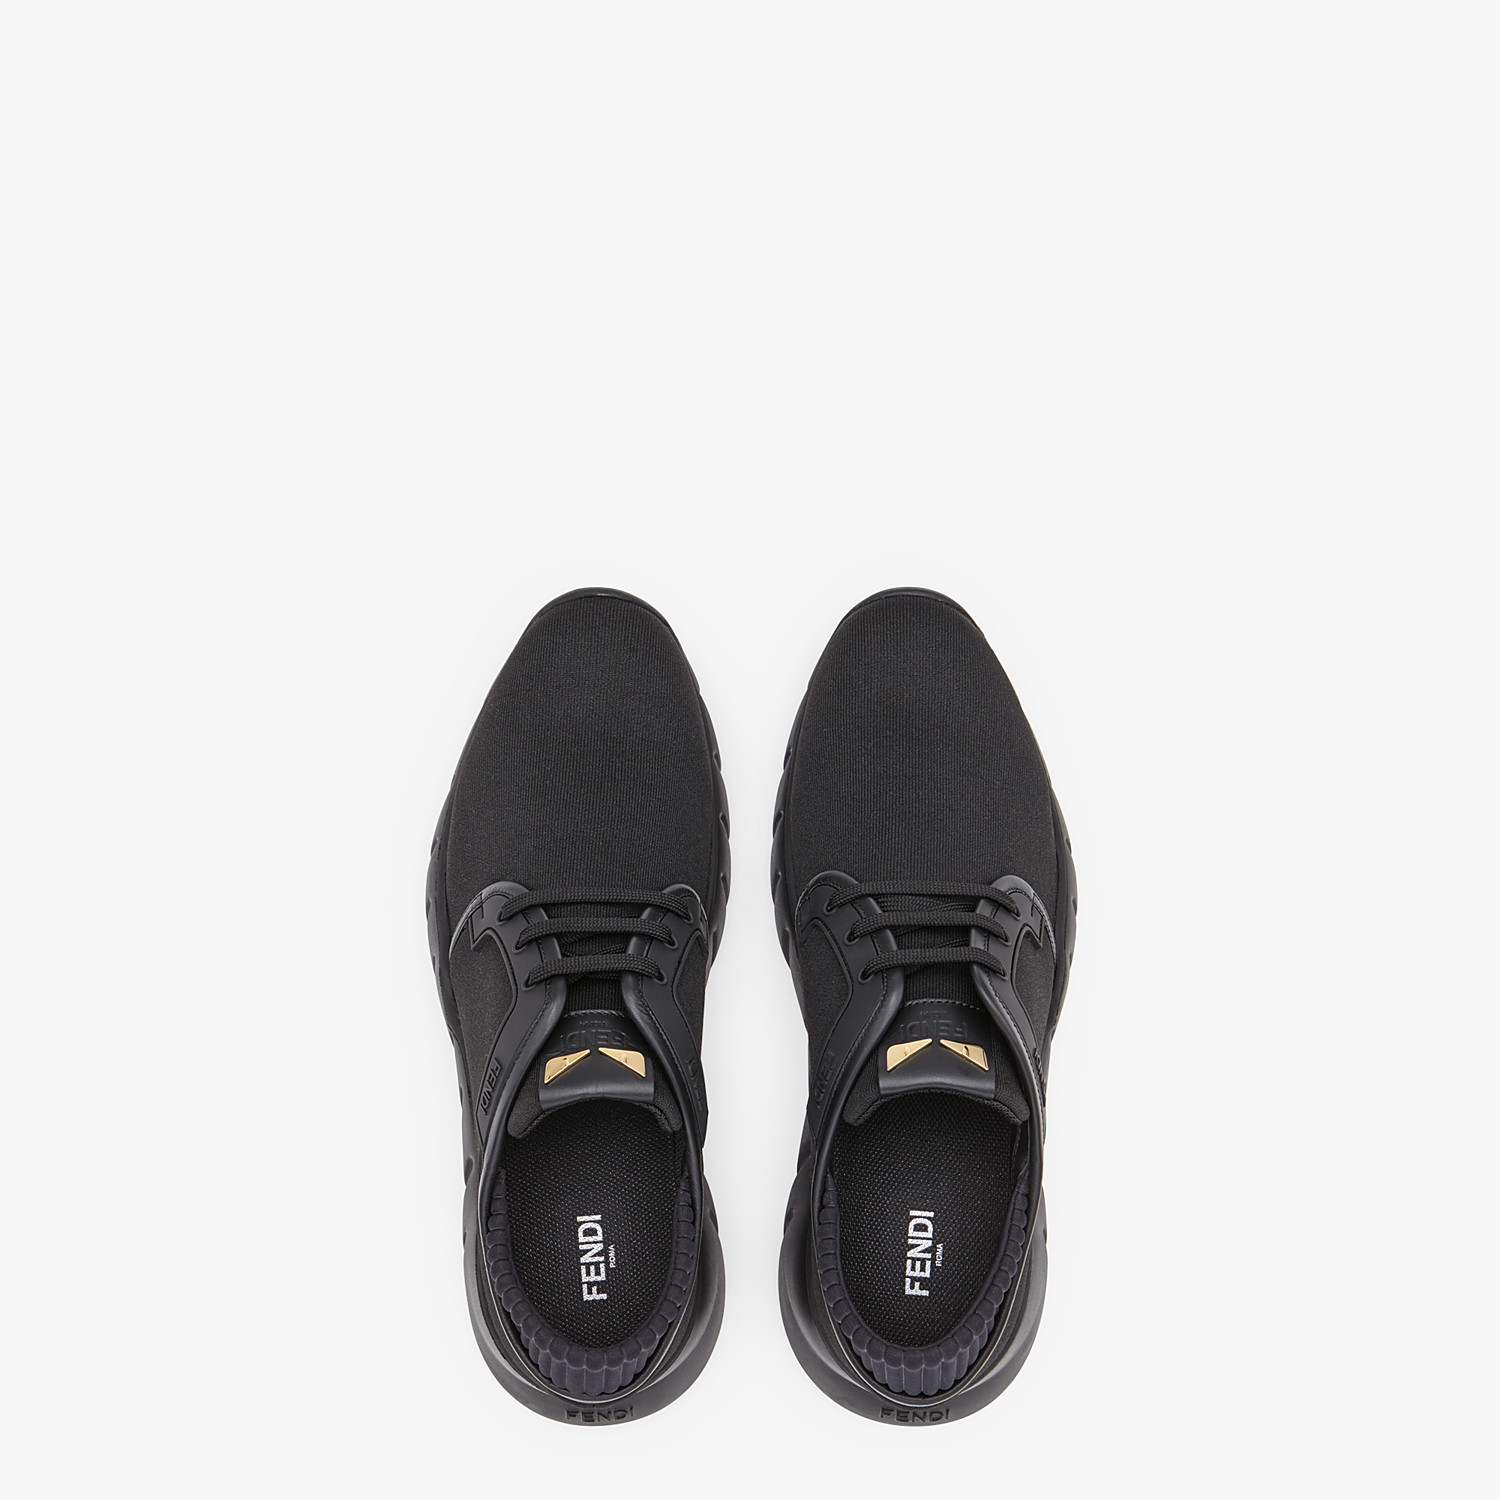 FENDI SNEAKERS - Black tech fabric sneakers - view 4 detail